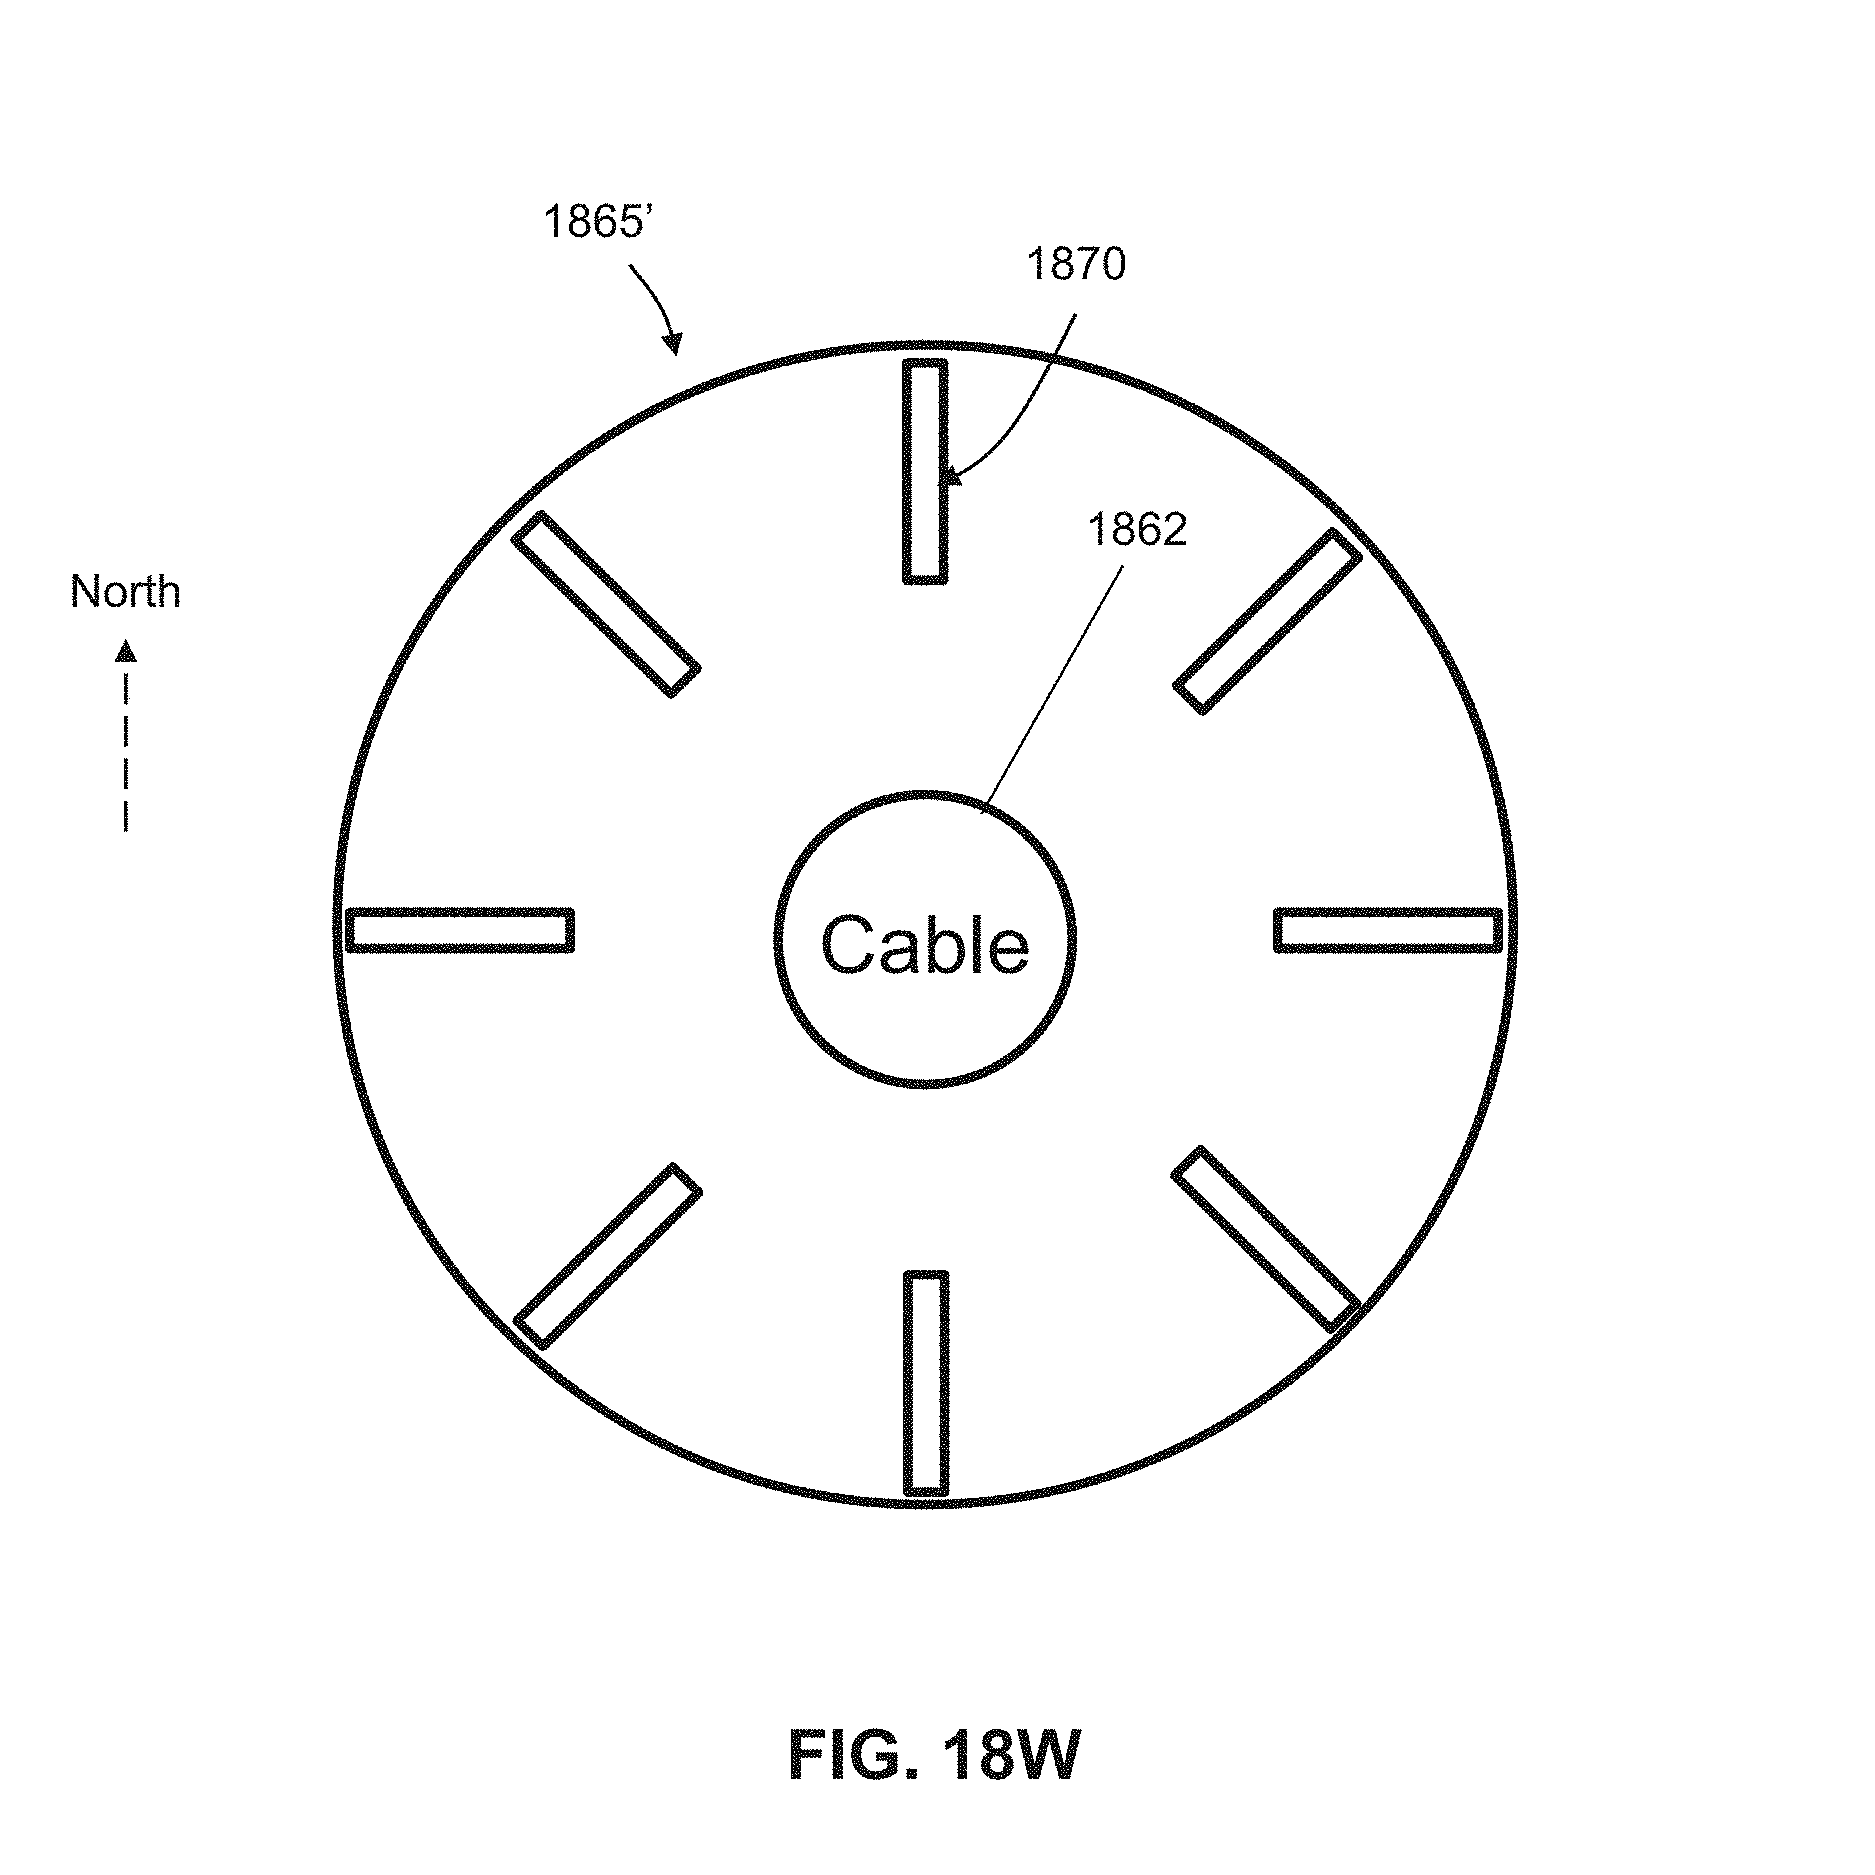 us9865911b2 waveguide system for slot radiating first Xfinity X1 Platform us9865911b2 waveguide system for slot radiating first electromagnetic waves that are bined into a non fundamental wave mode second electromagnetic wave